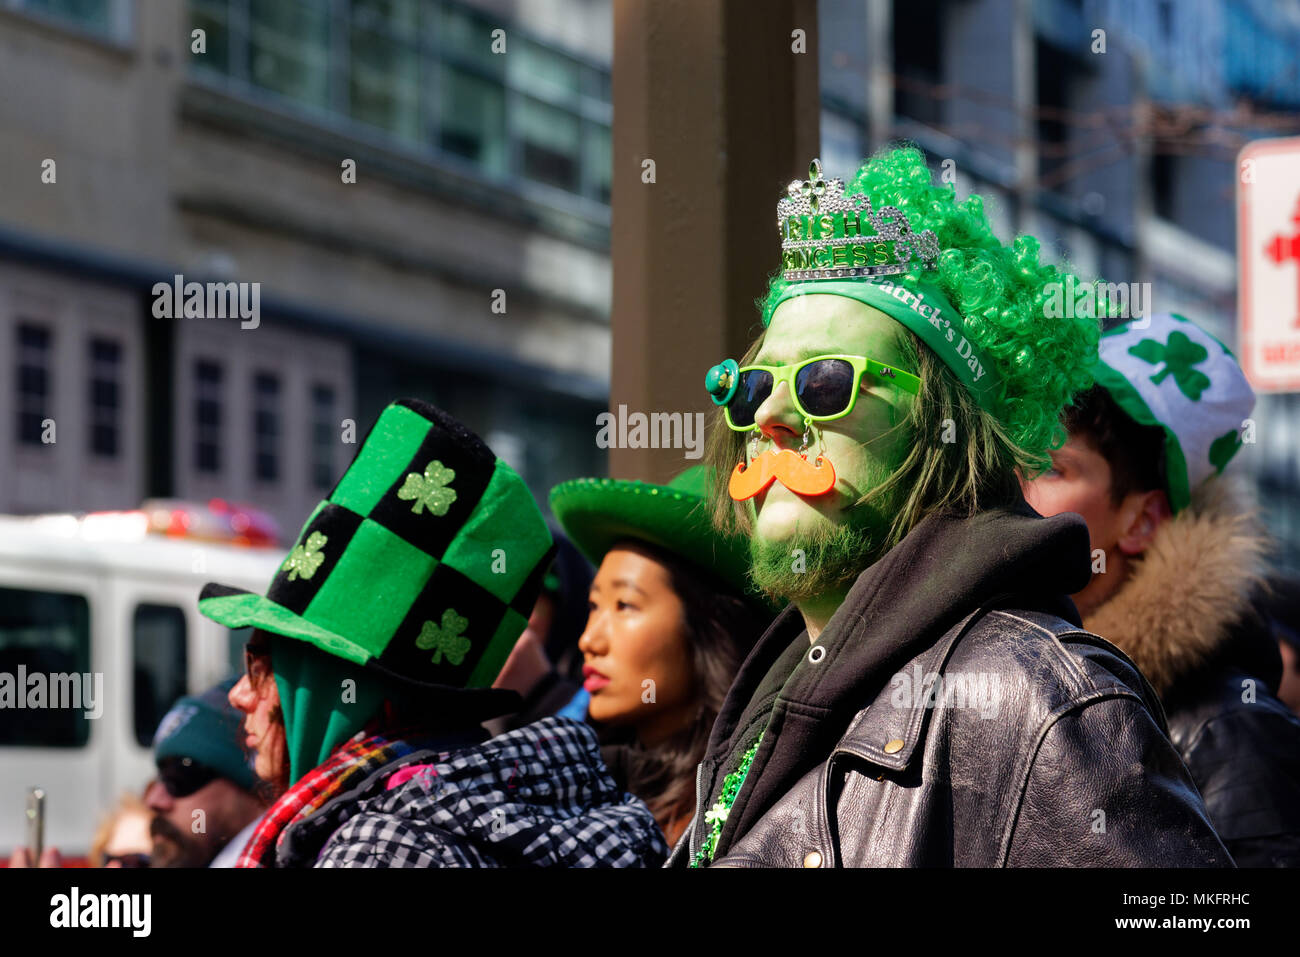 a-man-wearing-bright-green-hat-at-the-mo